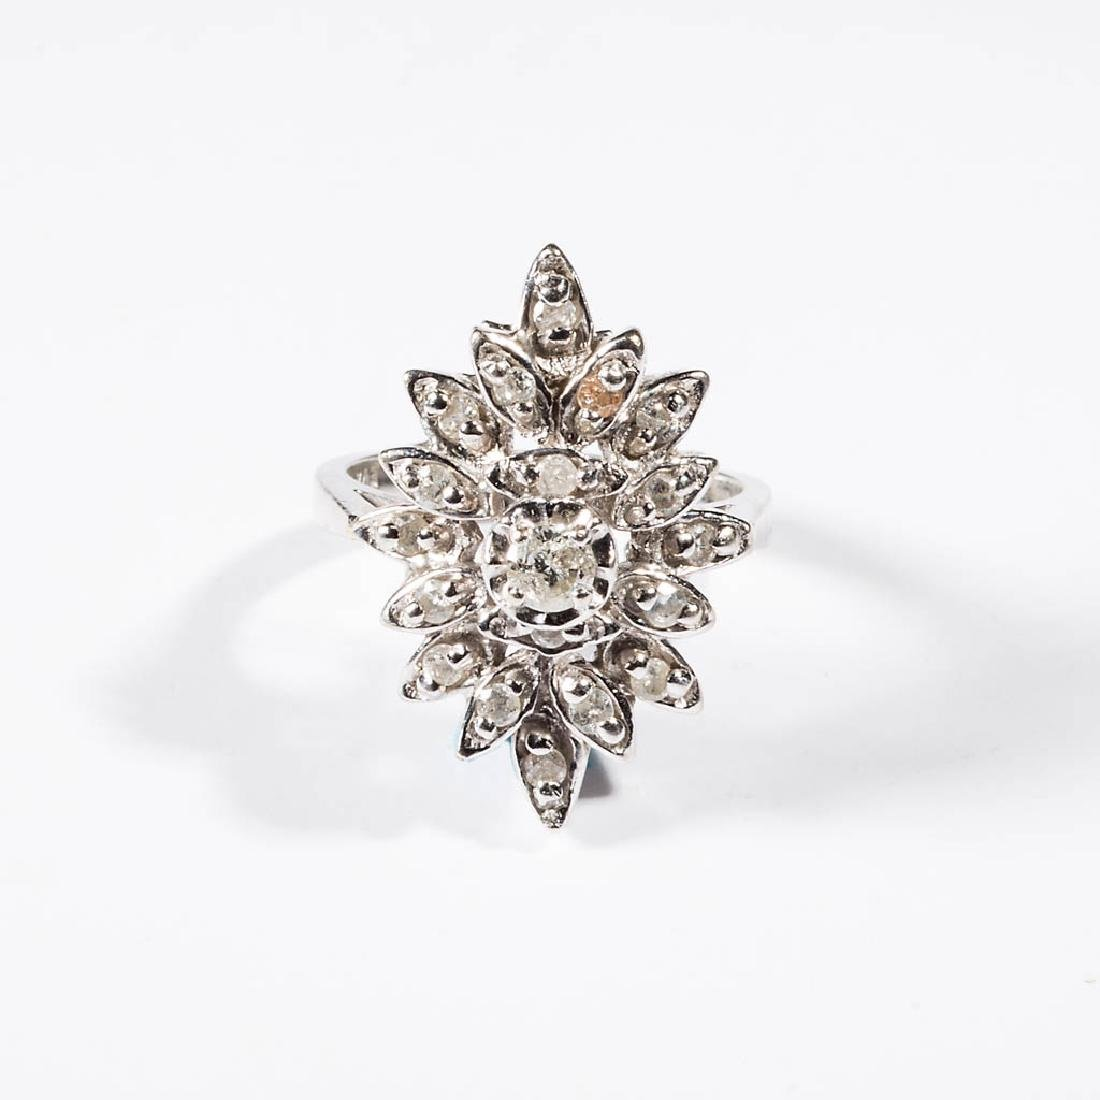 VINTAGE LADY'S 14K GOLD AND DIAMOND CLUSTER RING